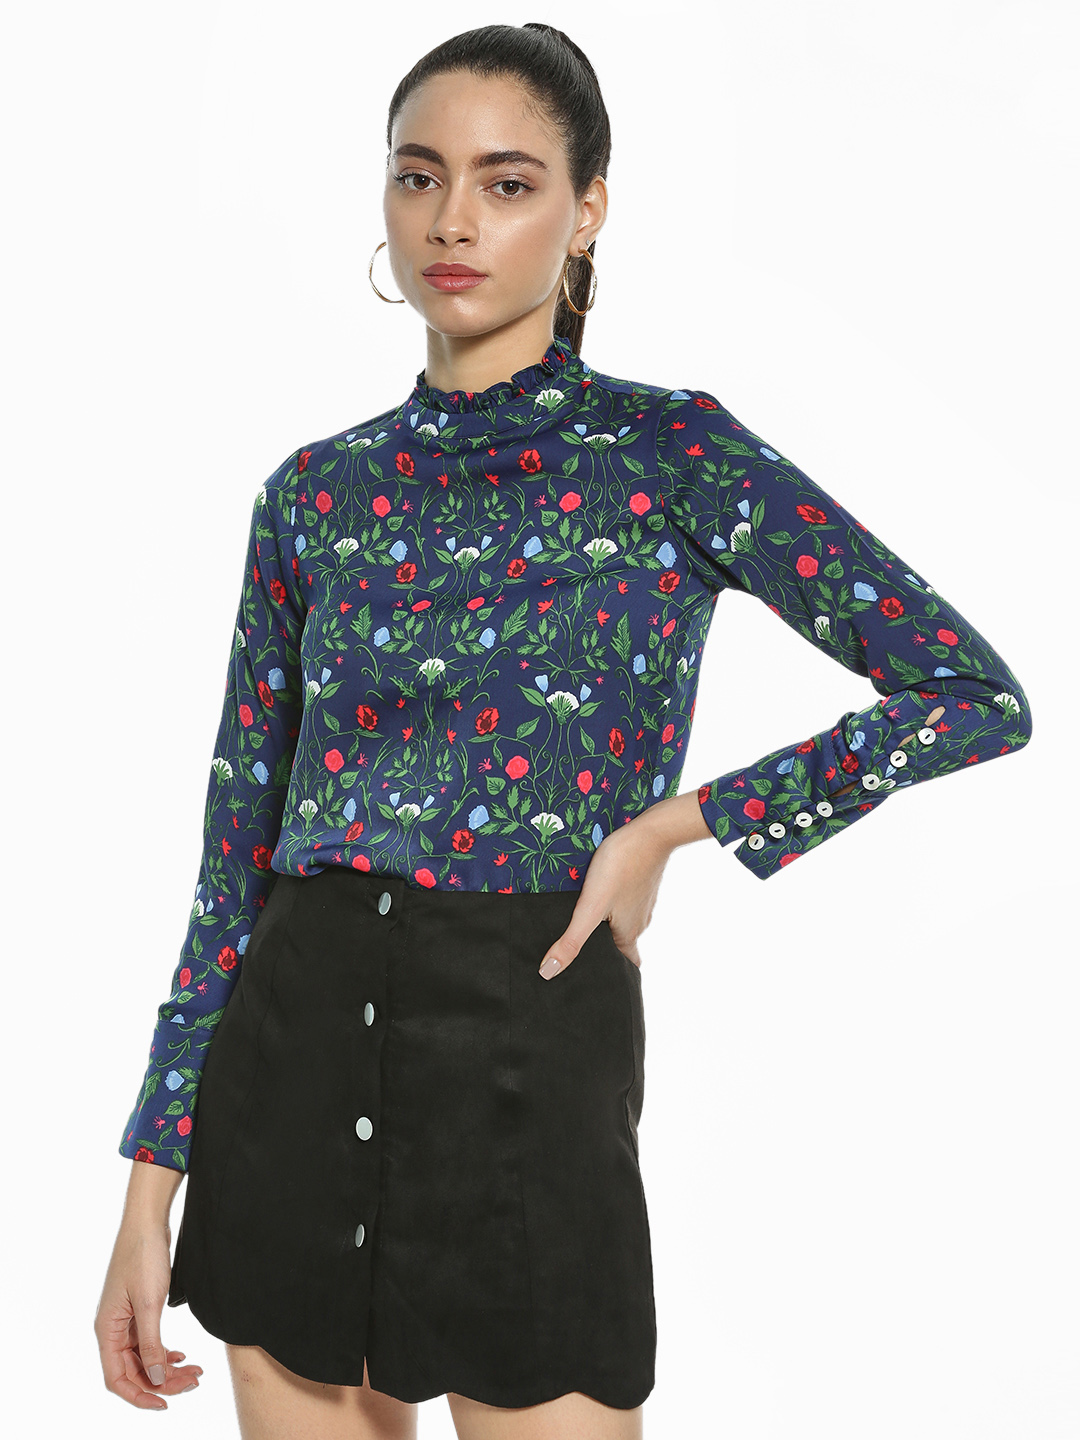 AND Navy Floral Print Ruffled Neck Blouse 1